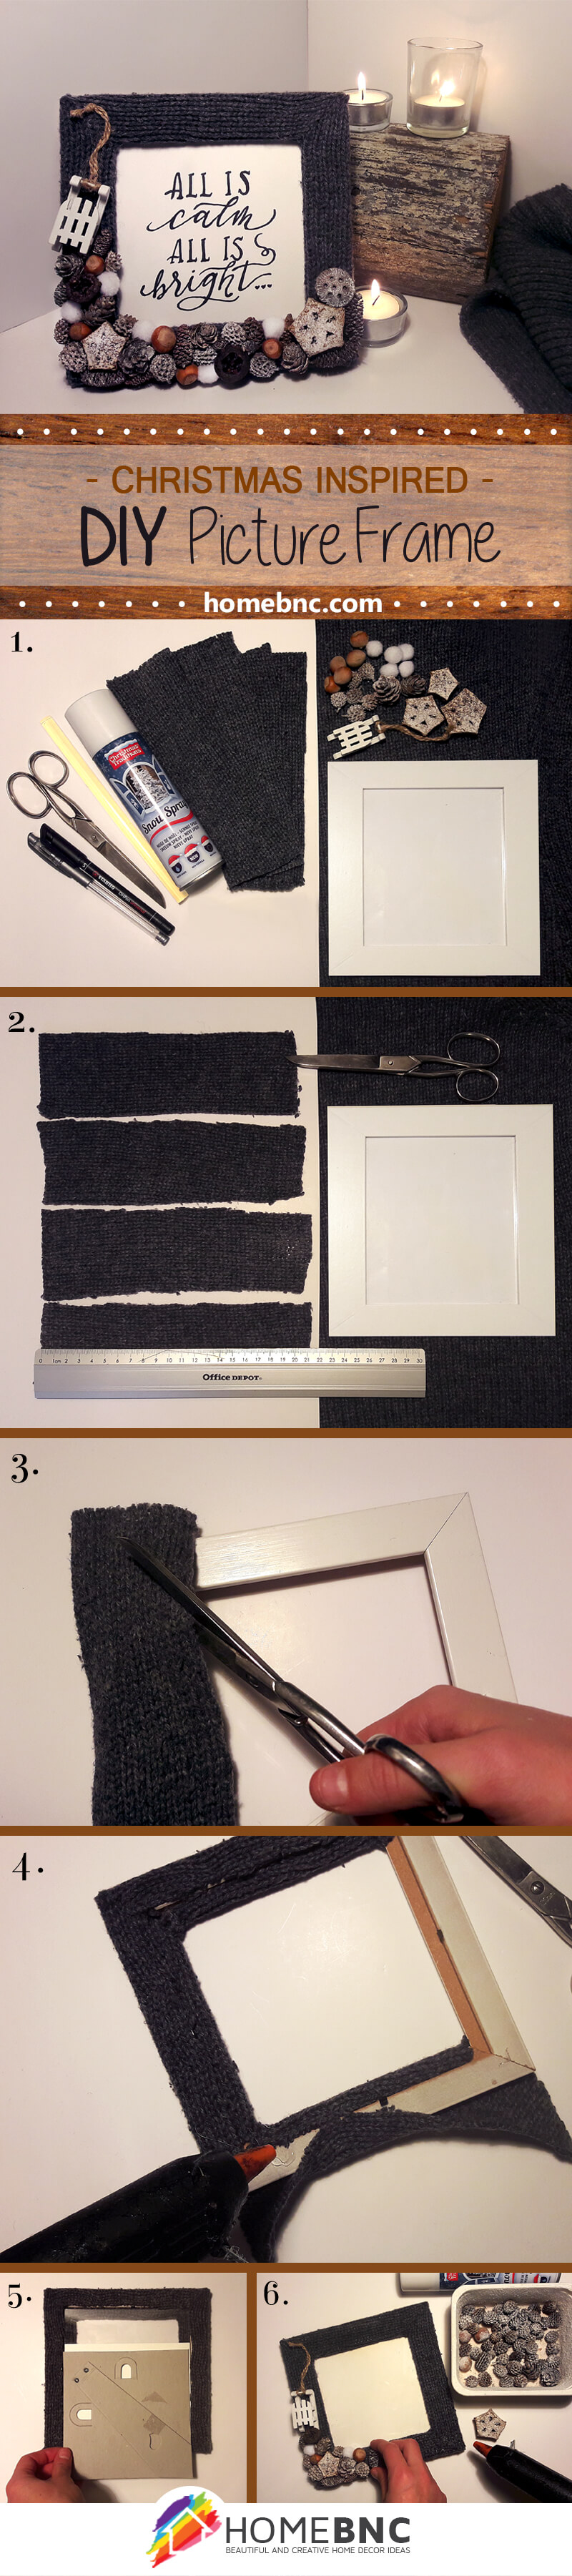 Christmas inspired diy picture frame homebnc how to easily create a cute picture frame for christmas christmas inspired picture frame jeuxipadfo Choice Image